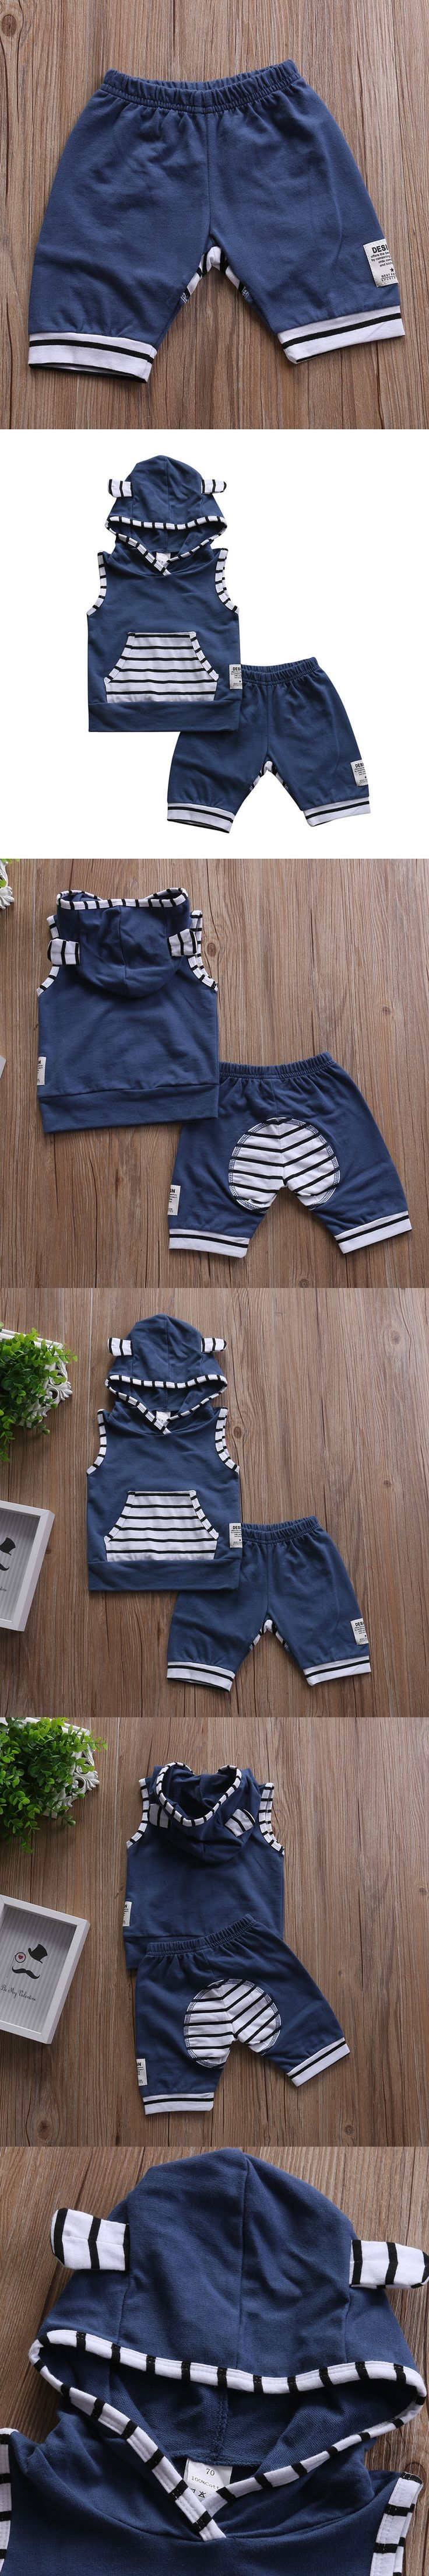 2pcs Cool Fashion Autumn Toddler Kids Baby Boys Girls Outfits Sleeveless Hooded Tops T-shirt + Striped Short Pants Clothes Set